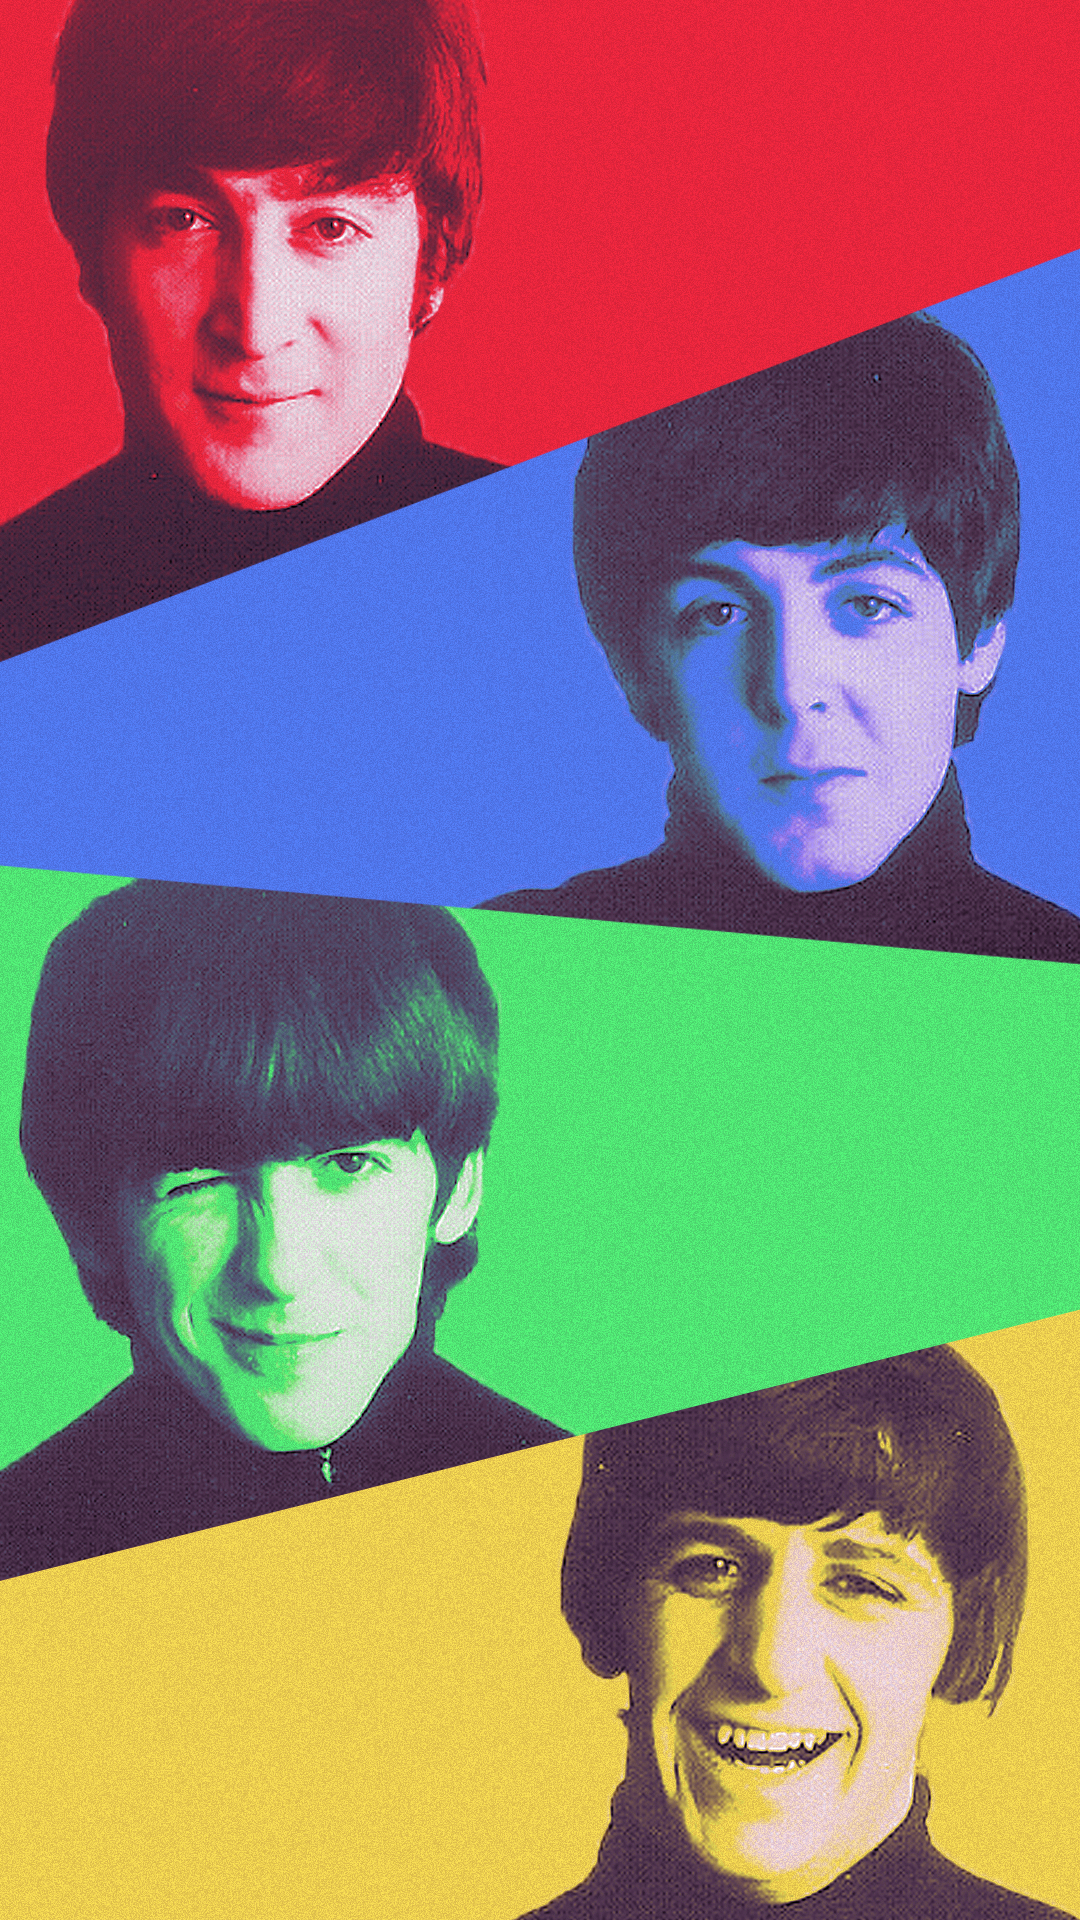 The beatles appleiphone x wallpapers beatles art film the beatles appleiphone x wallpapers voltagebd Choice Image